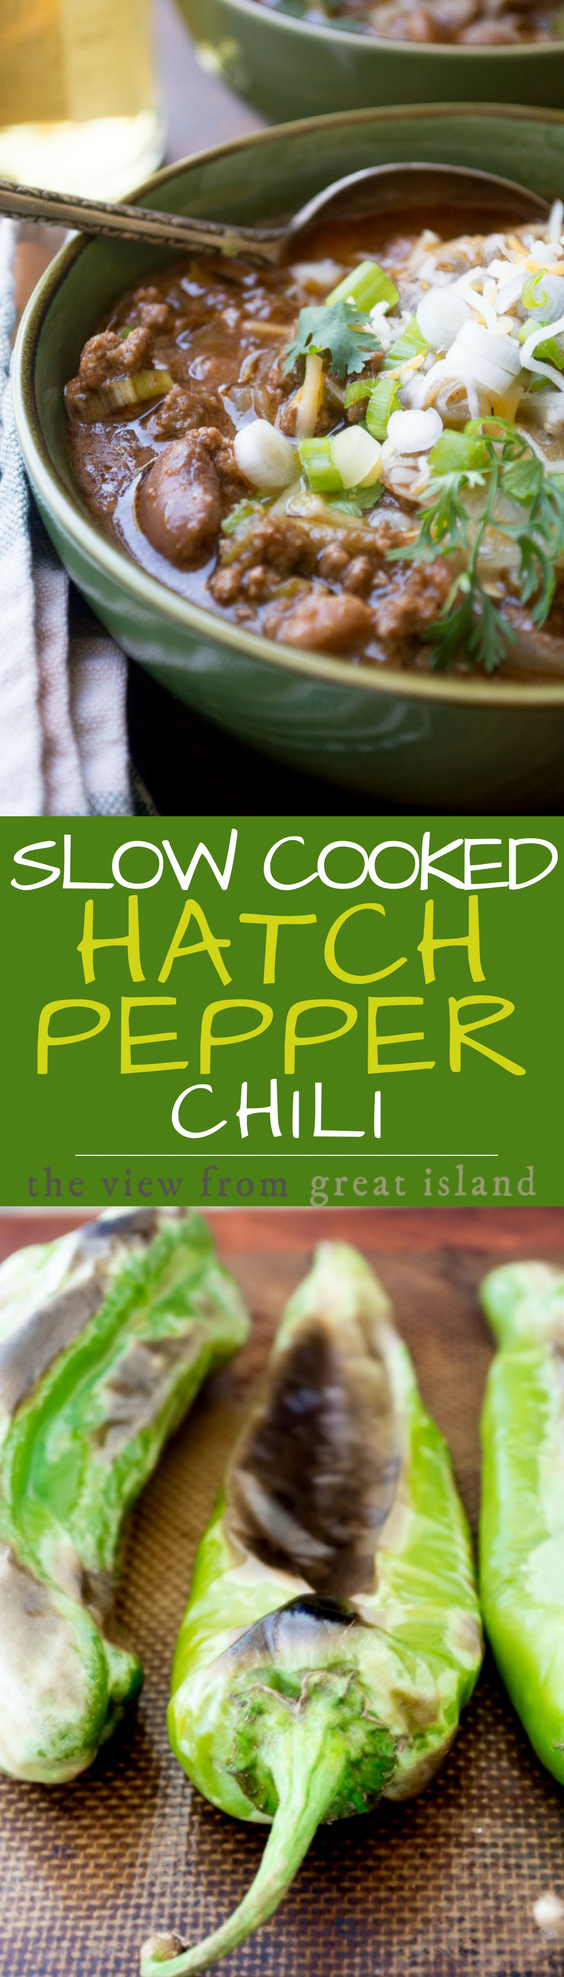 Slow Cooked Hatch Pepper Chili ~ this lush chili is perfect for the summer months when fresh Hatch chiles from New Mexico are available ~ but use canned or frozen chiles the rest of the year so you don't miss this amazing slow cooked meal. #crockpot #stew #hatchchile #newmexico #chili #bestchili #bestslowcookerchili #amazingchili #chilirecipe #recipe #comfortfood #onepotmeal